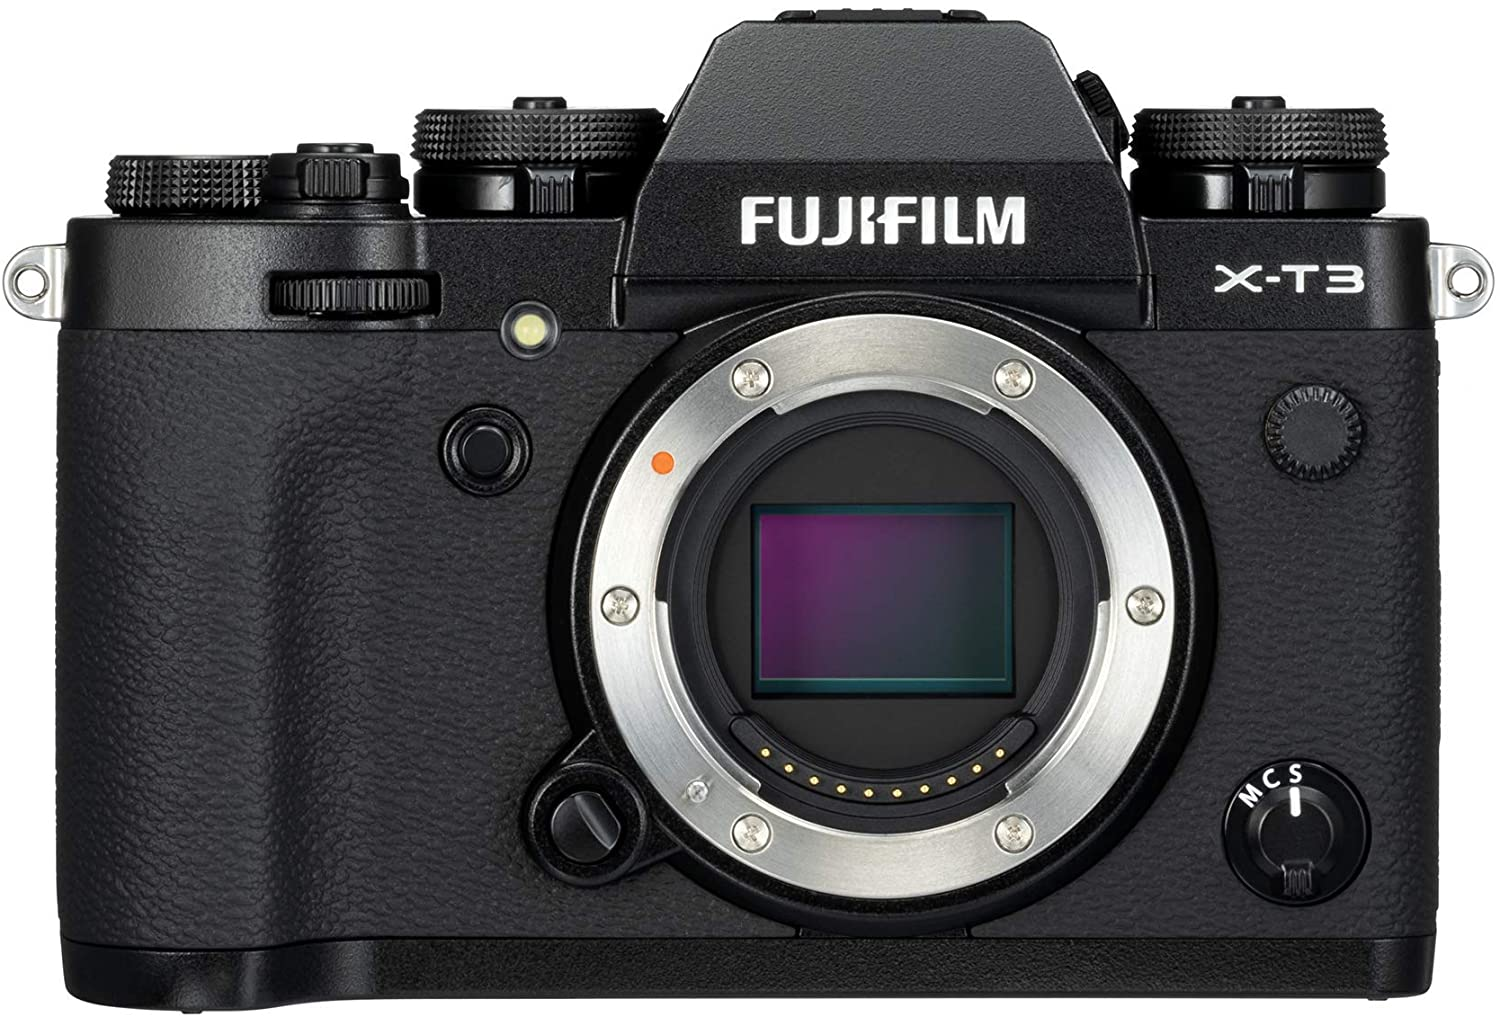 Fujifilm X-T3 has a really good image processing sensor that clears out most of the noise in a dark set like a concert